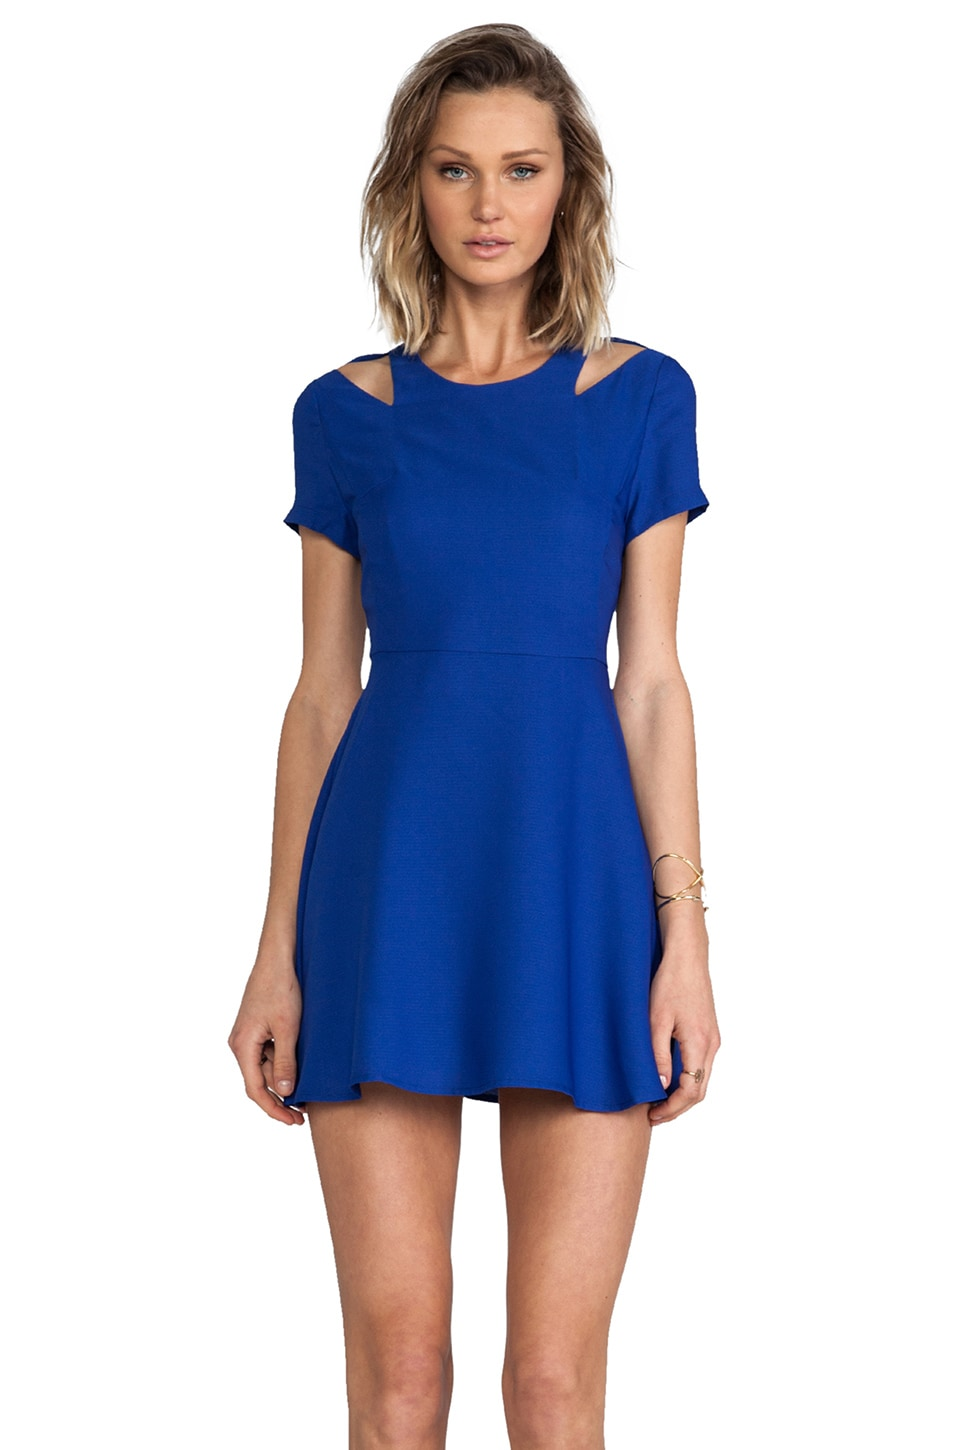 BLAQUE LABEL Dress in Royal Blue